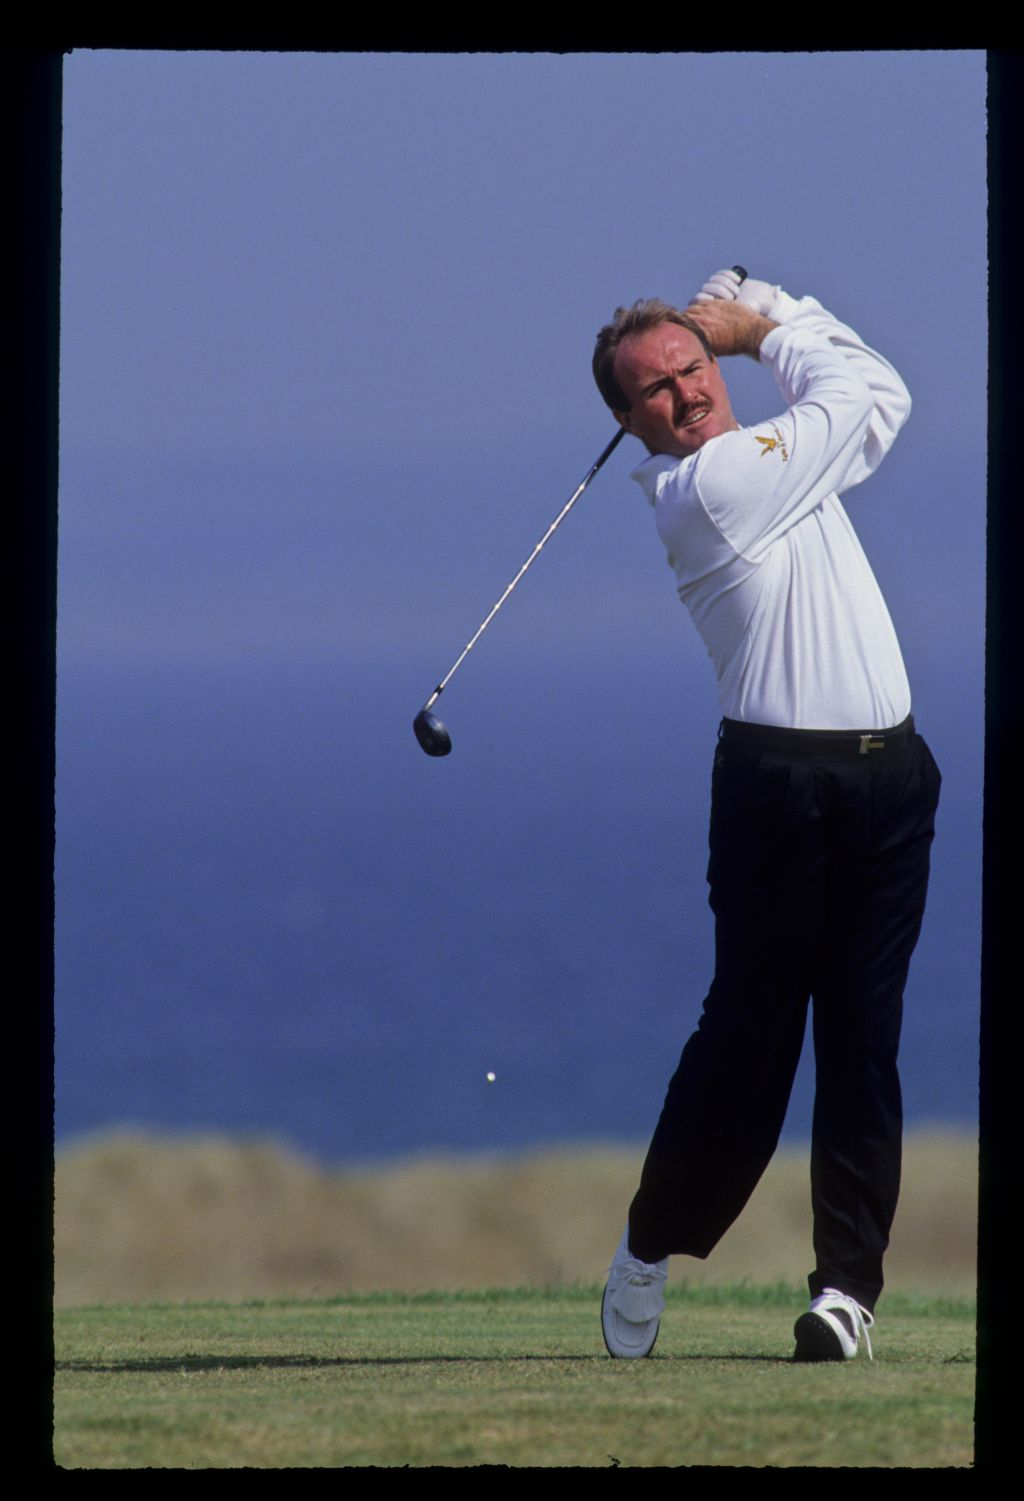 Ronan Rafferty following through on the tee during the 1992 Open Championship